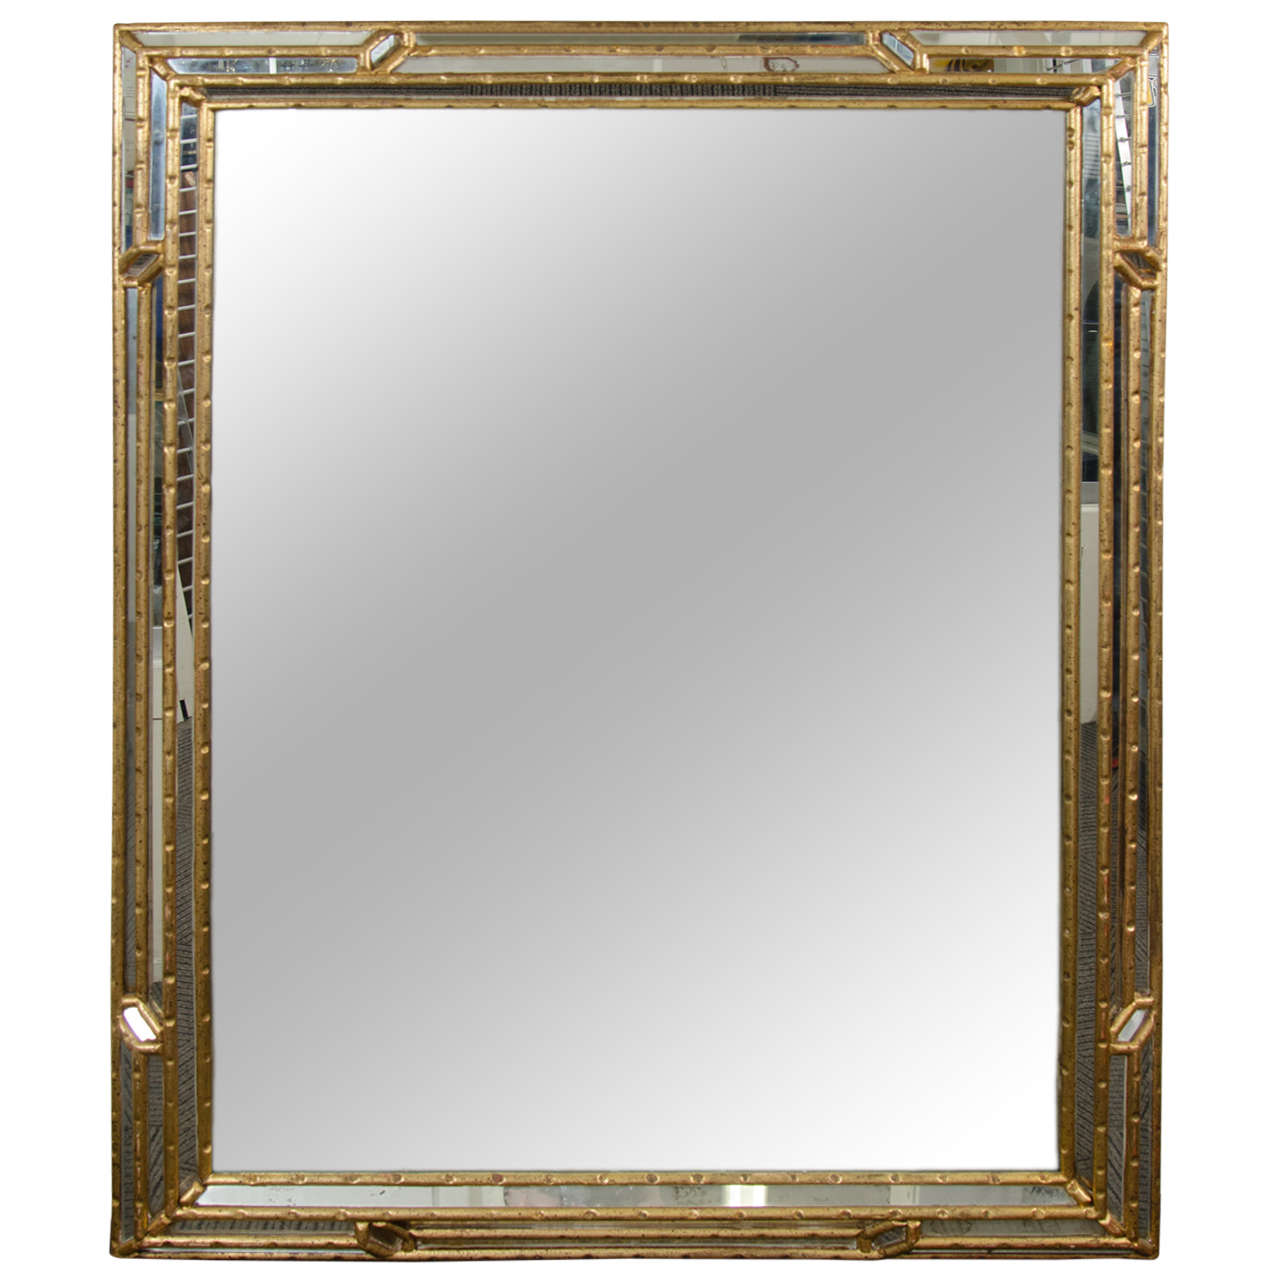 bamboo framed mirror images